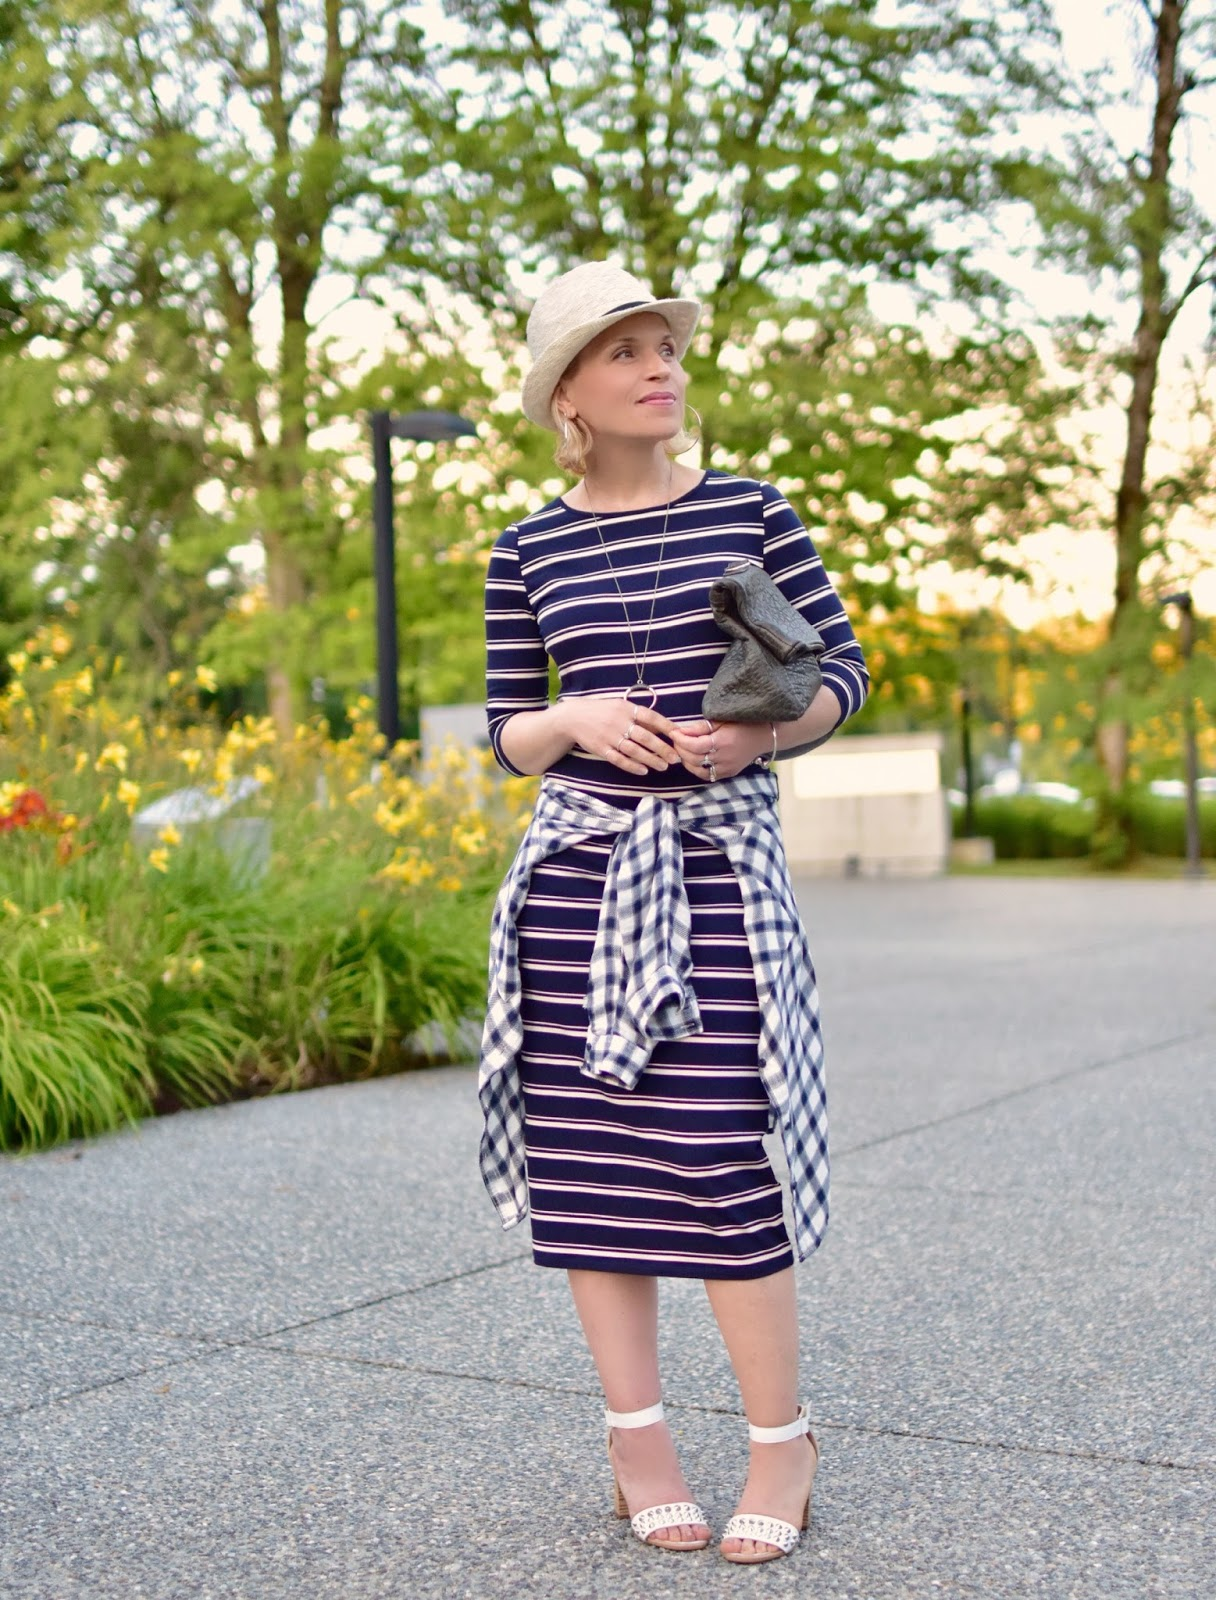 styling a striped t-shirt dress with waist-tied plaid shirt, ankle-strap sandals, and a woven fedora